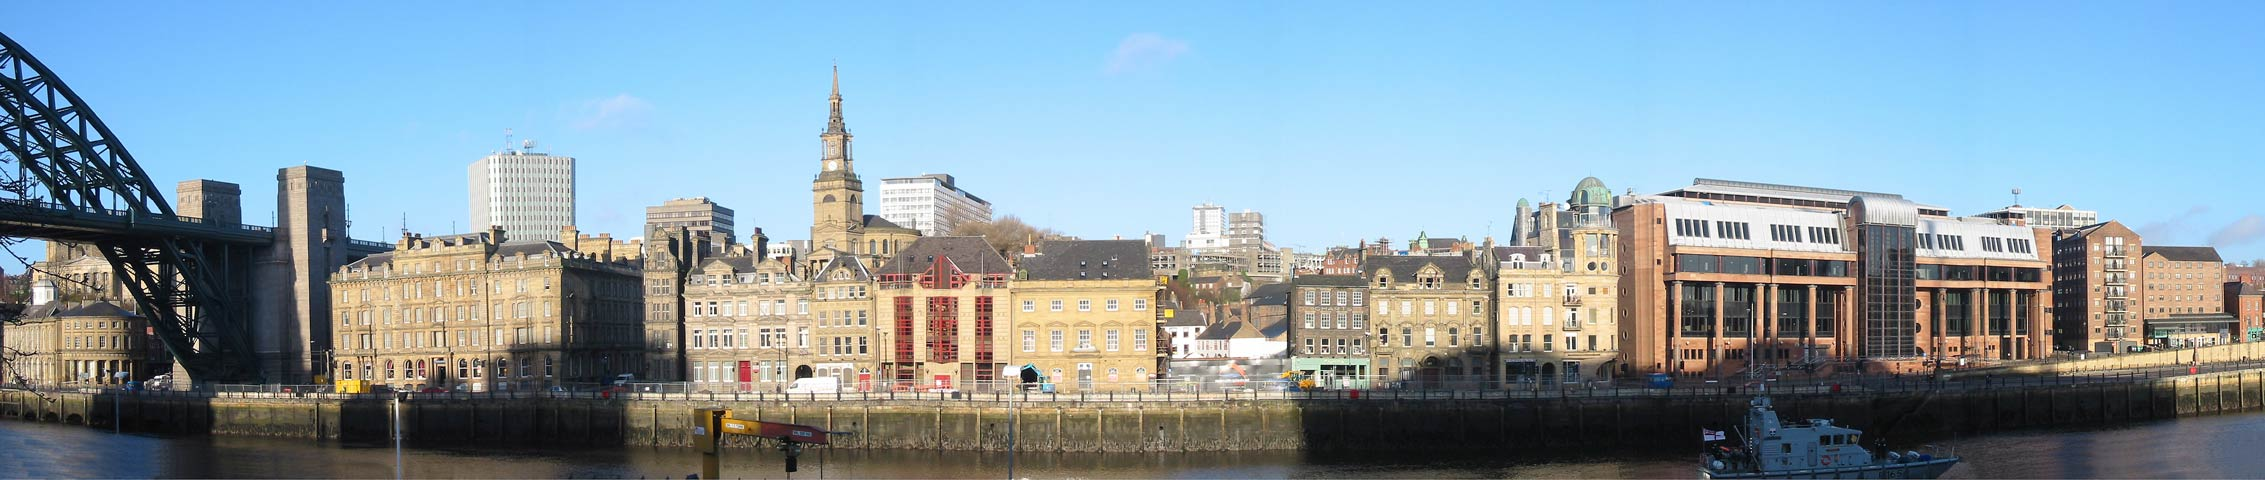 Panoramic view of The Quayside